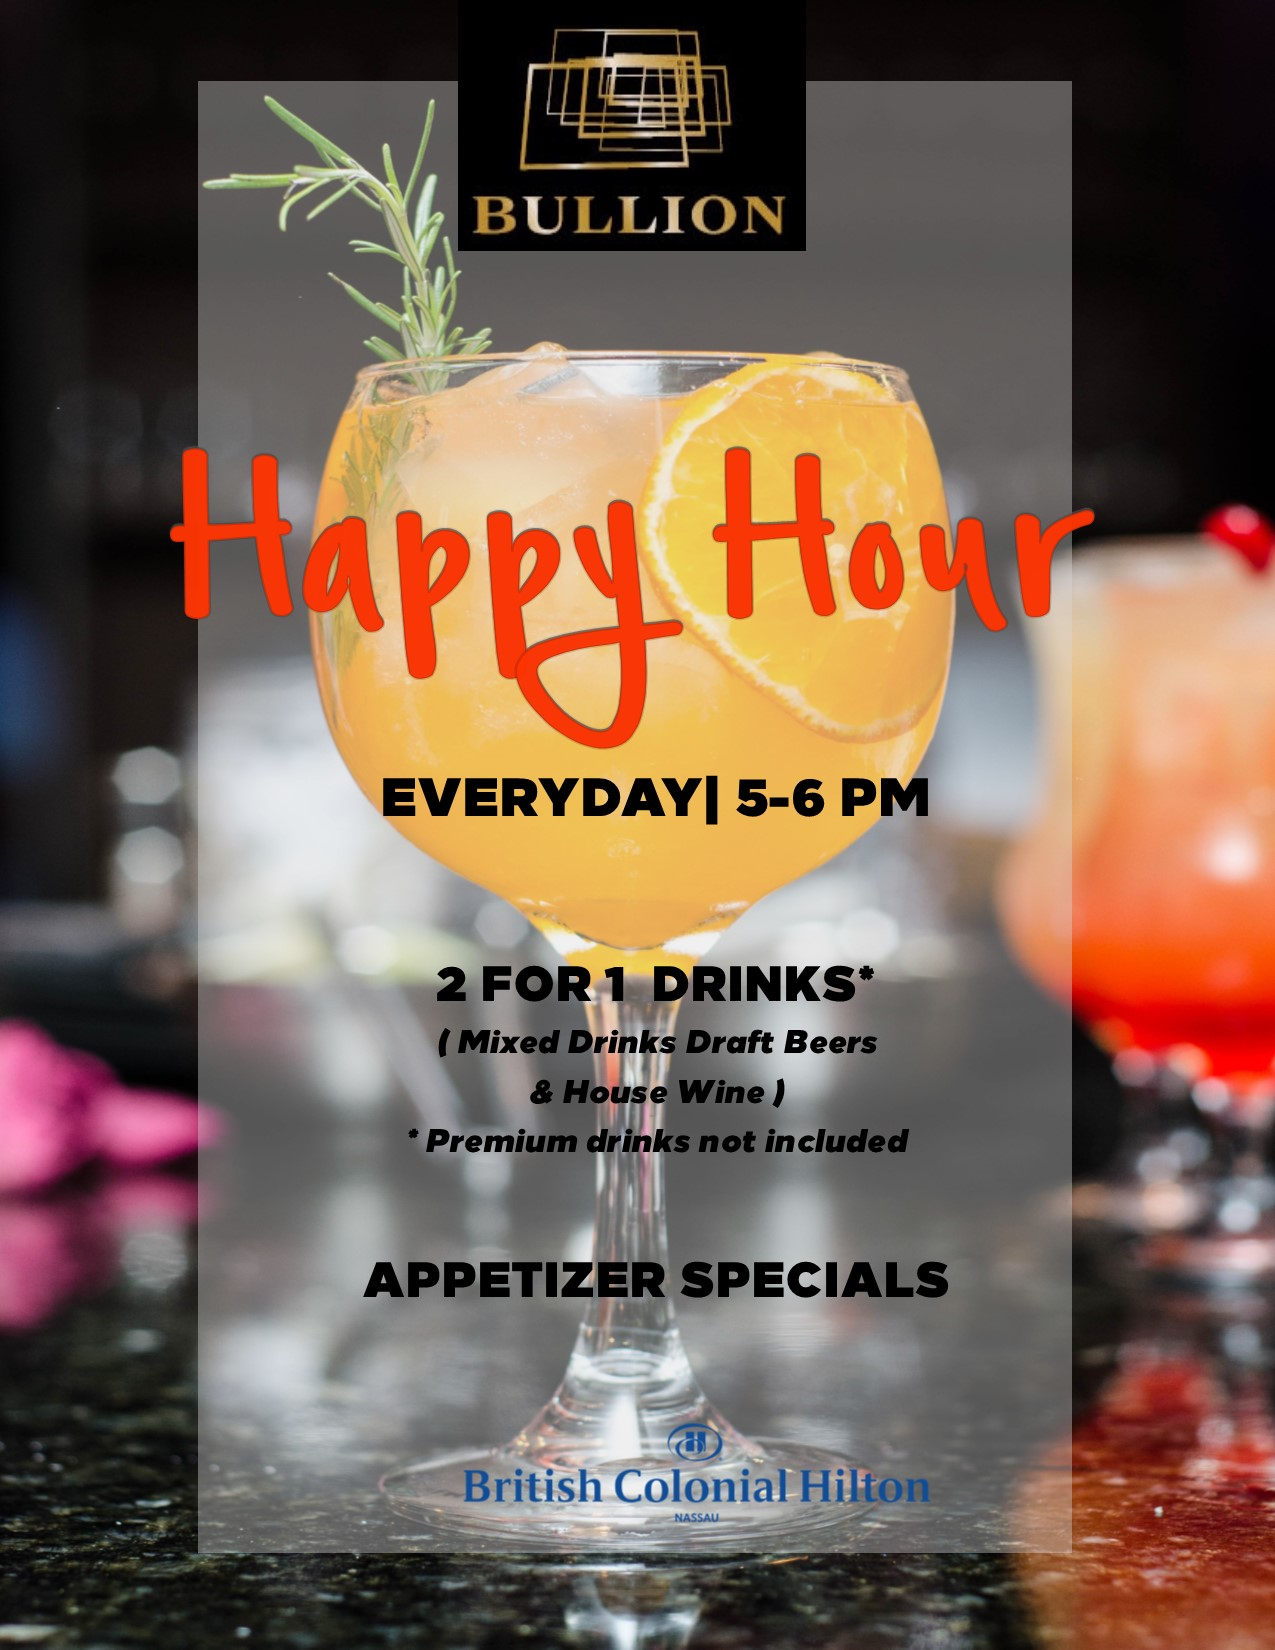 Happy Hour At Bullion, British Colonial Hilton